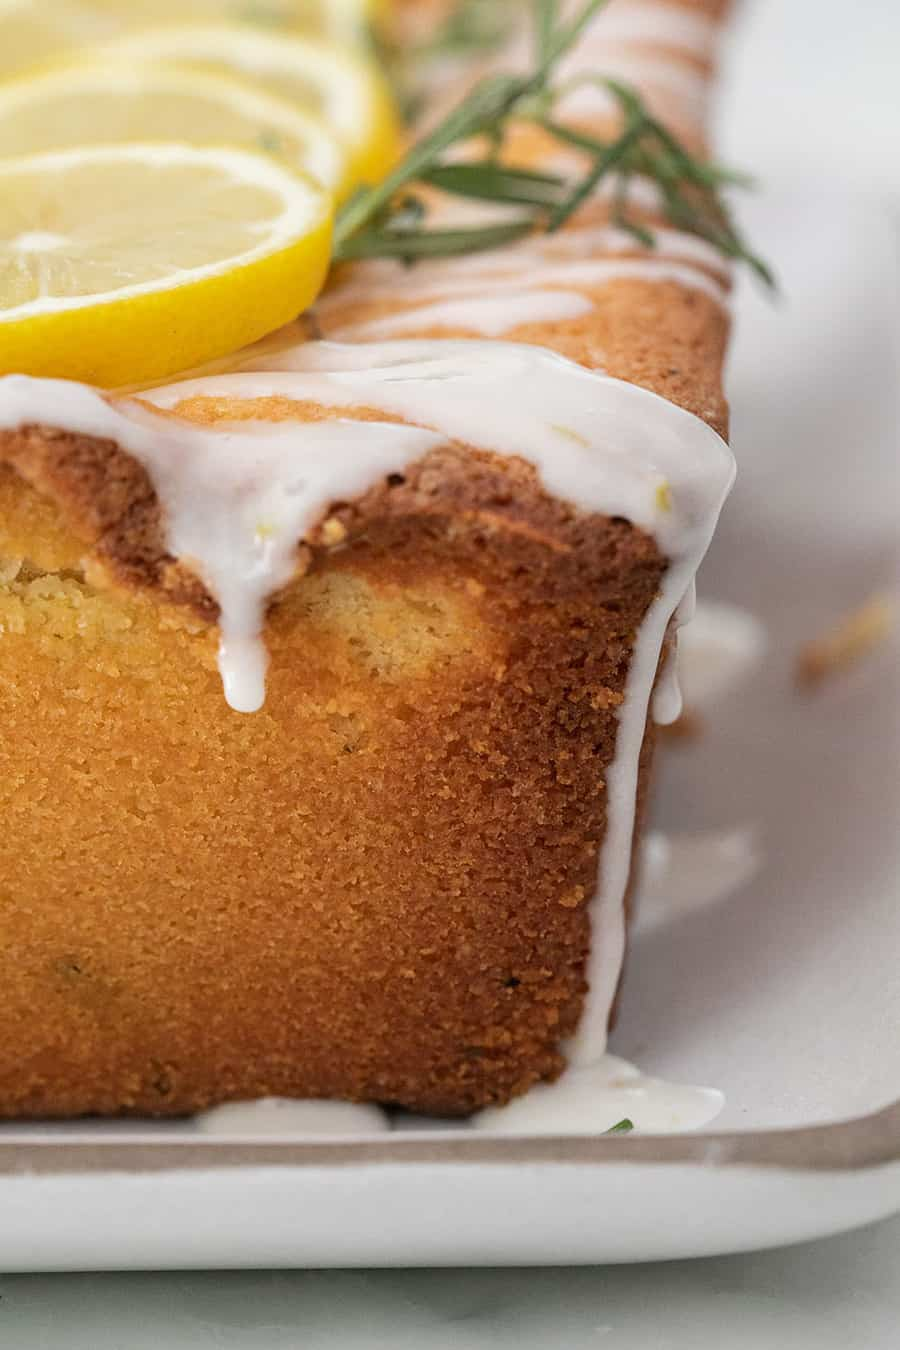 Lemon loaf cake with drizzled glaze over the top.